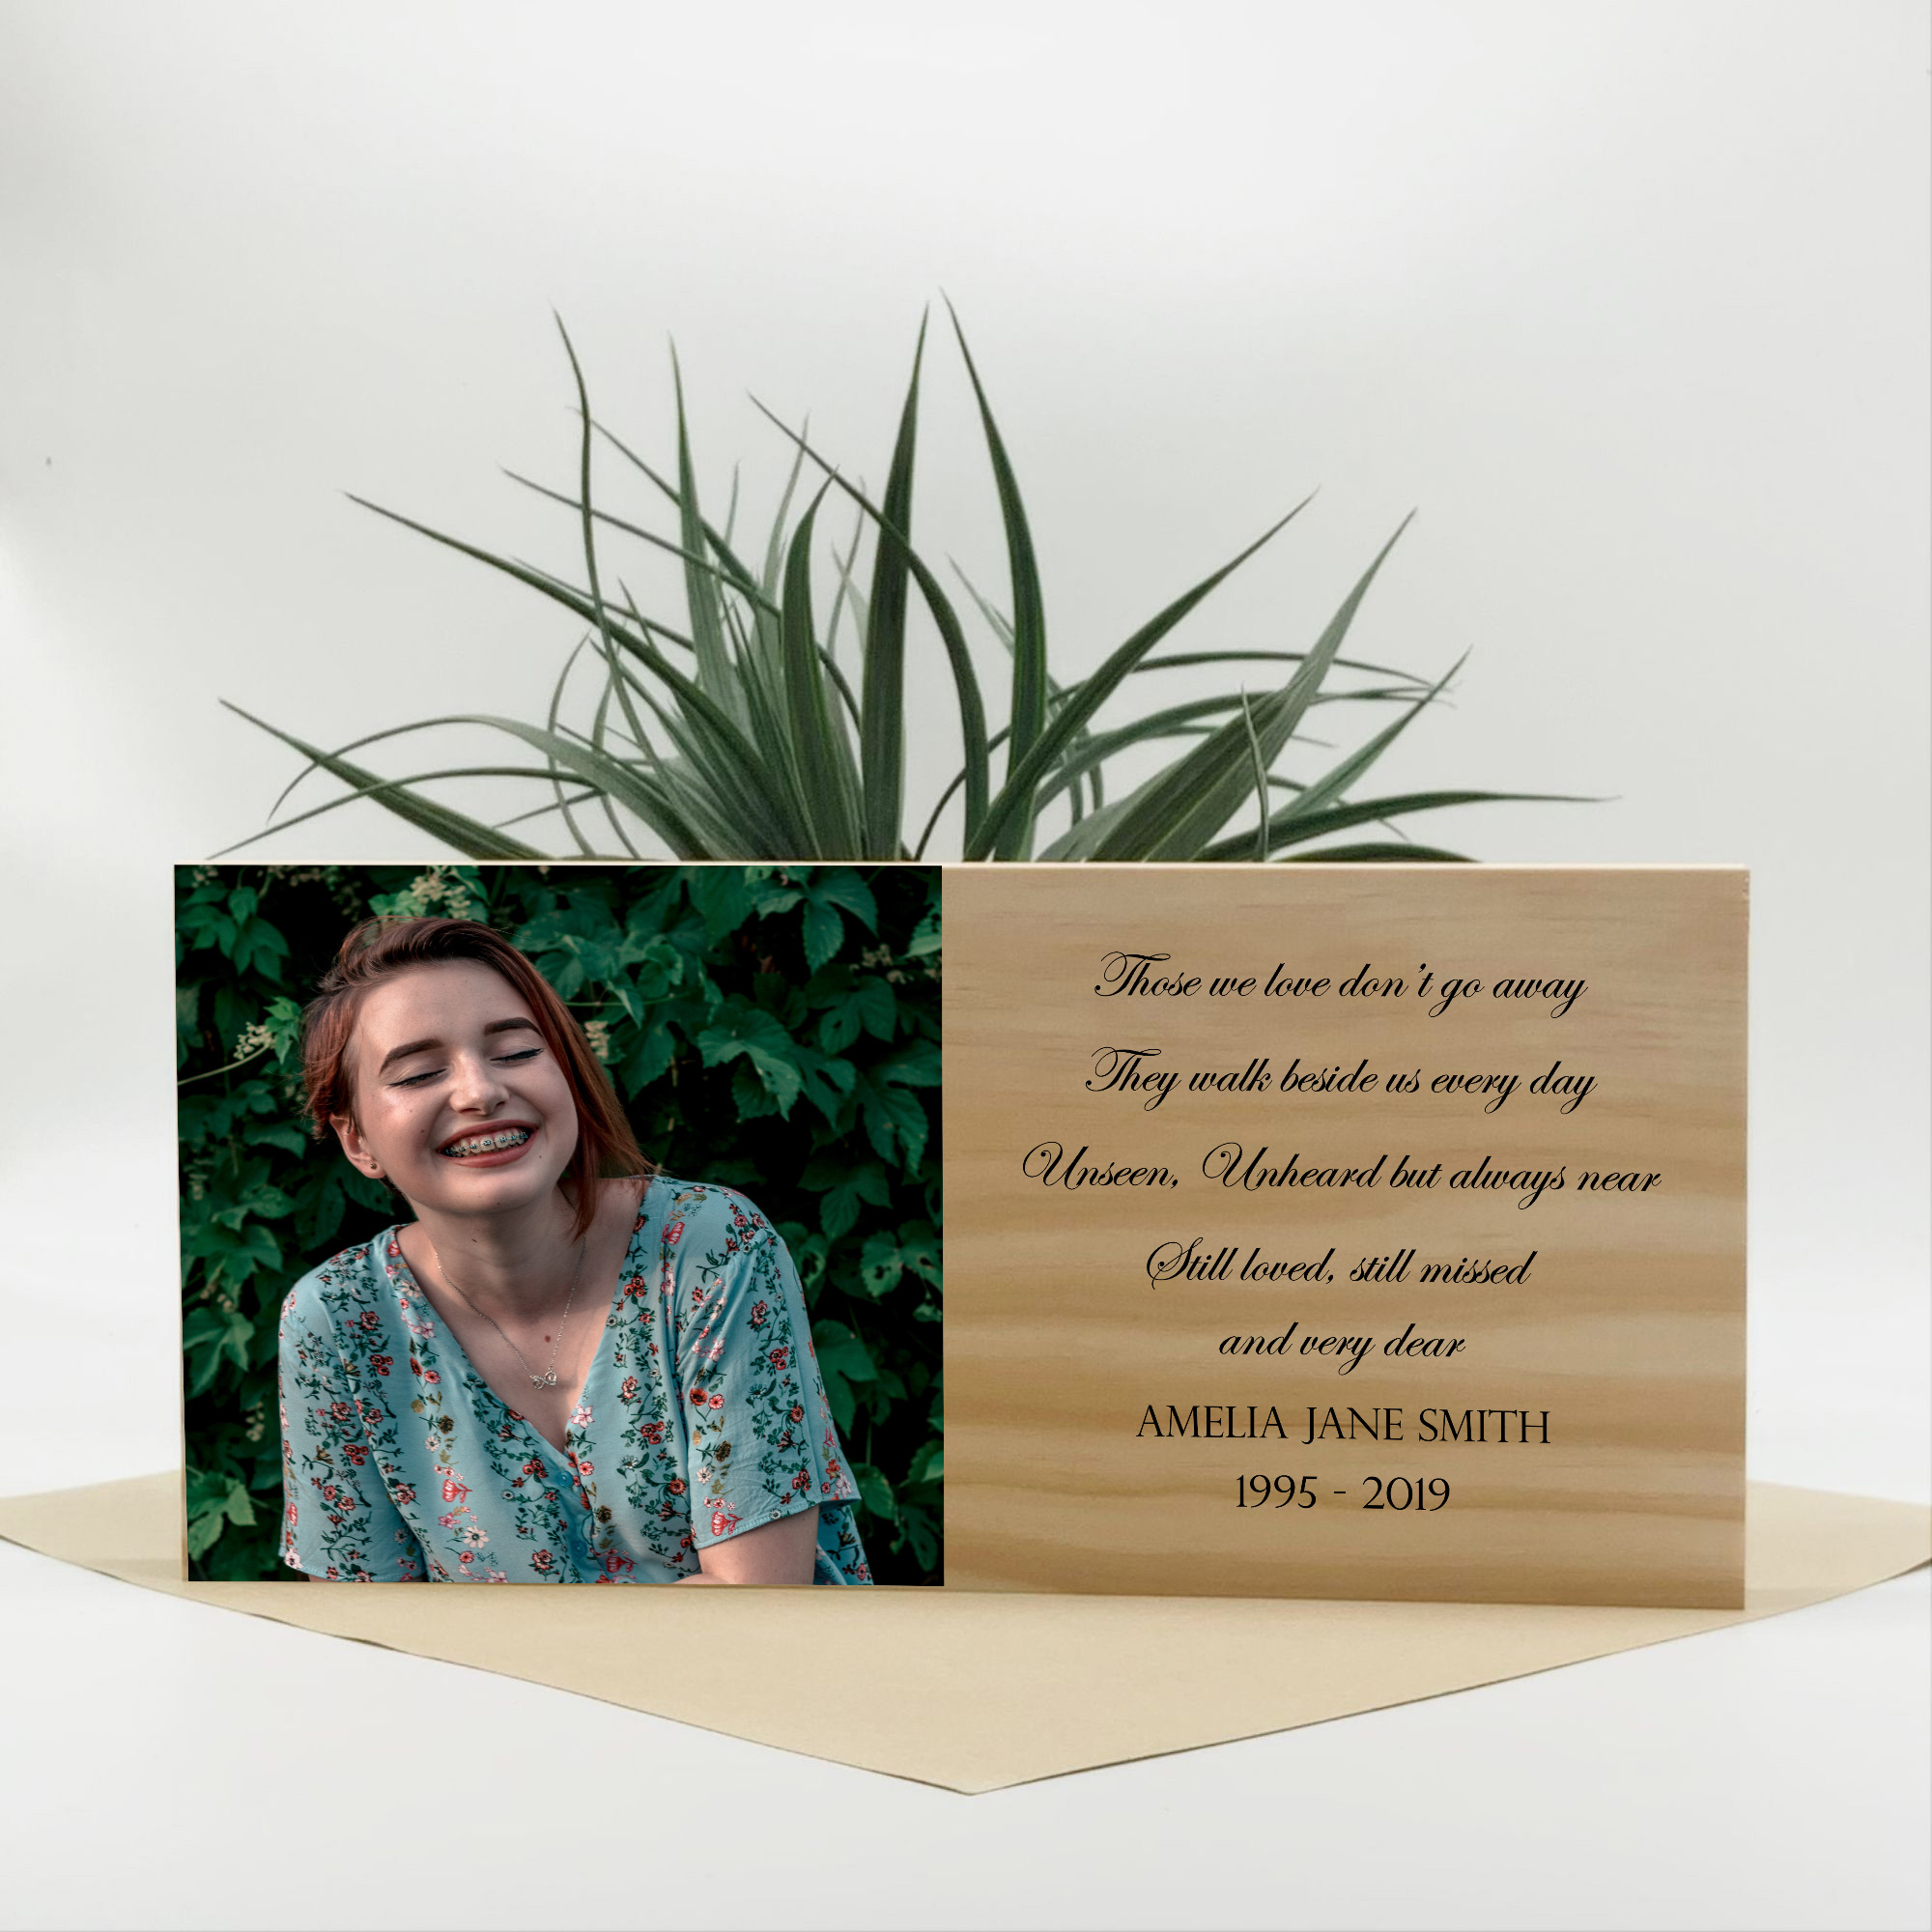 memorial-christmas-ornaments-photo-on-wooden-block